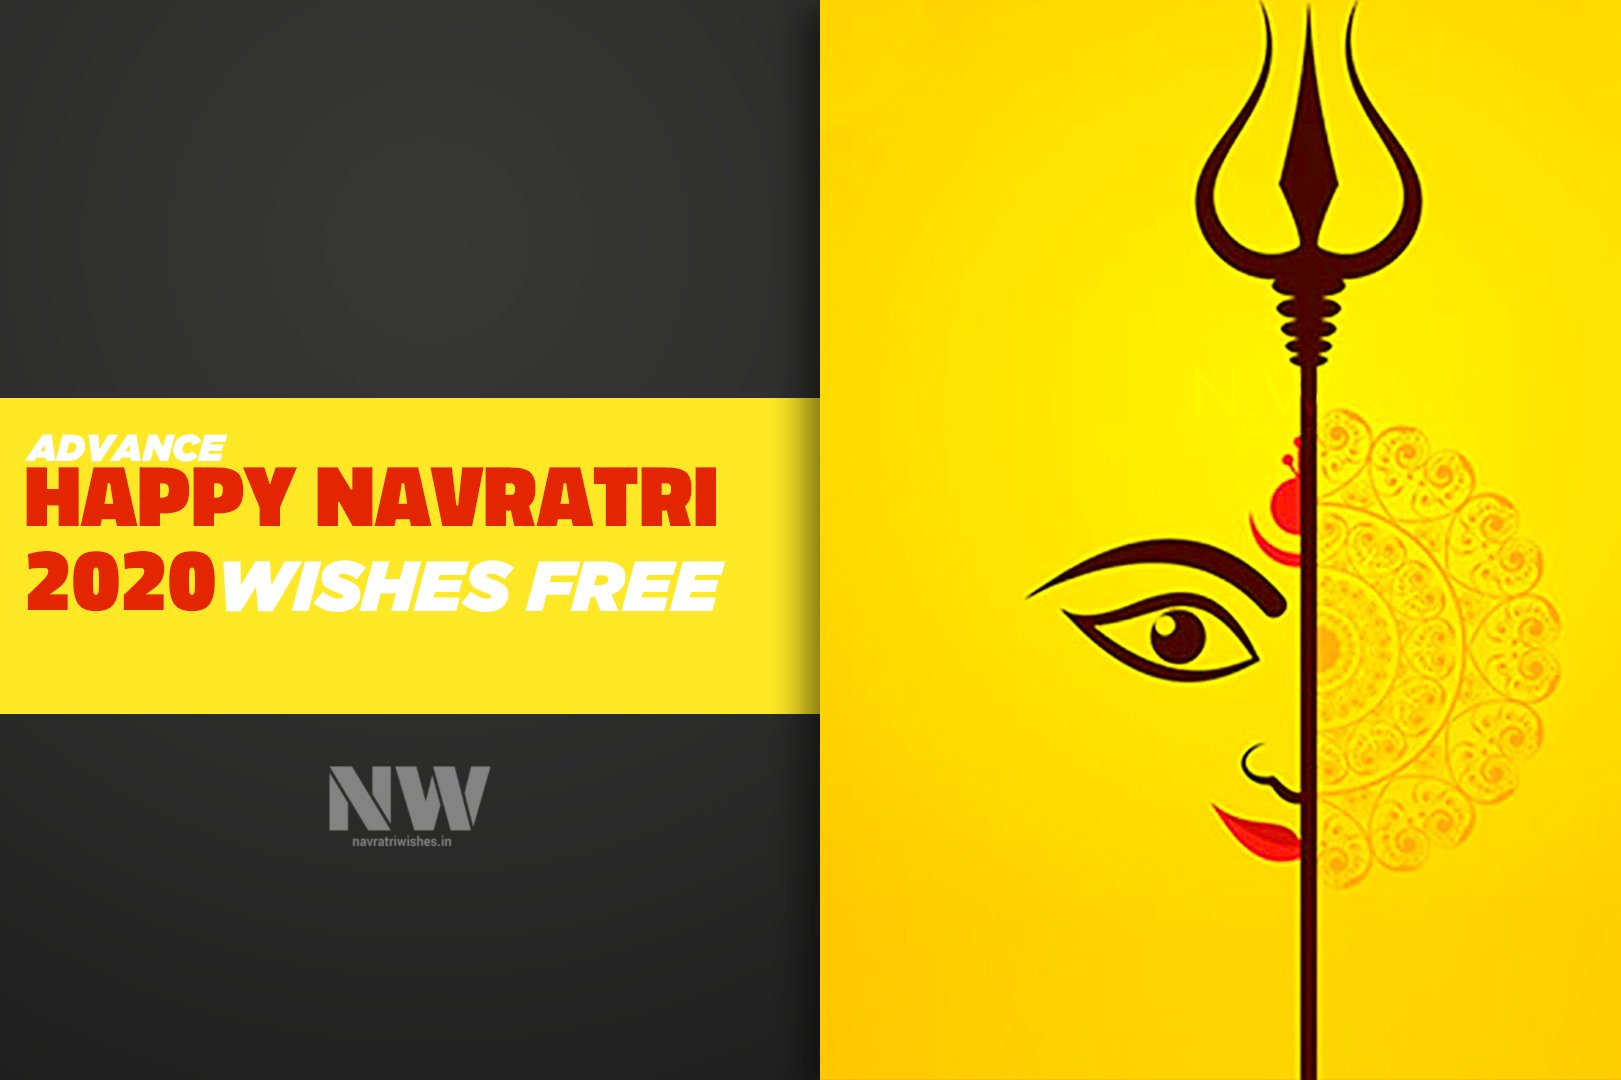 advance-happy-navratri-2020-wishes-free